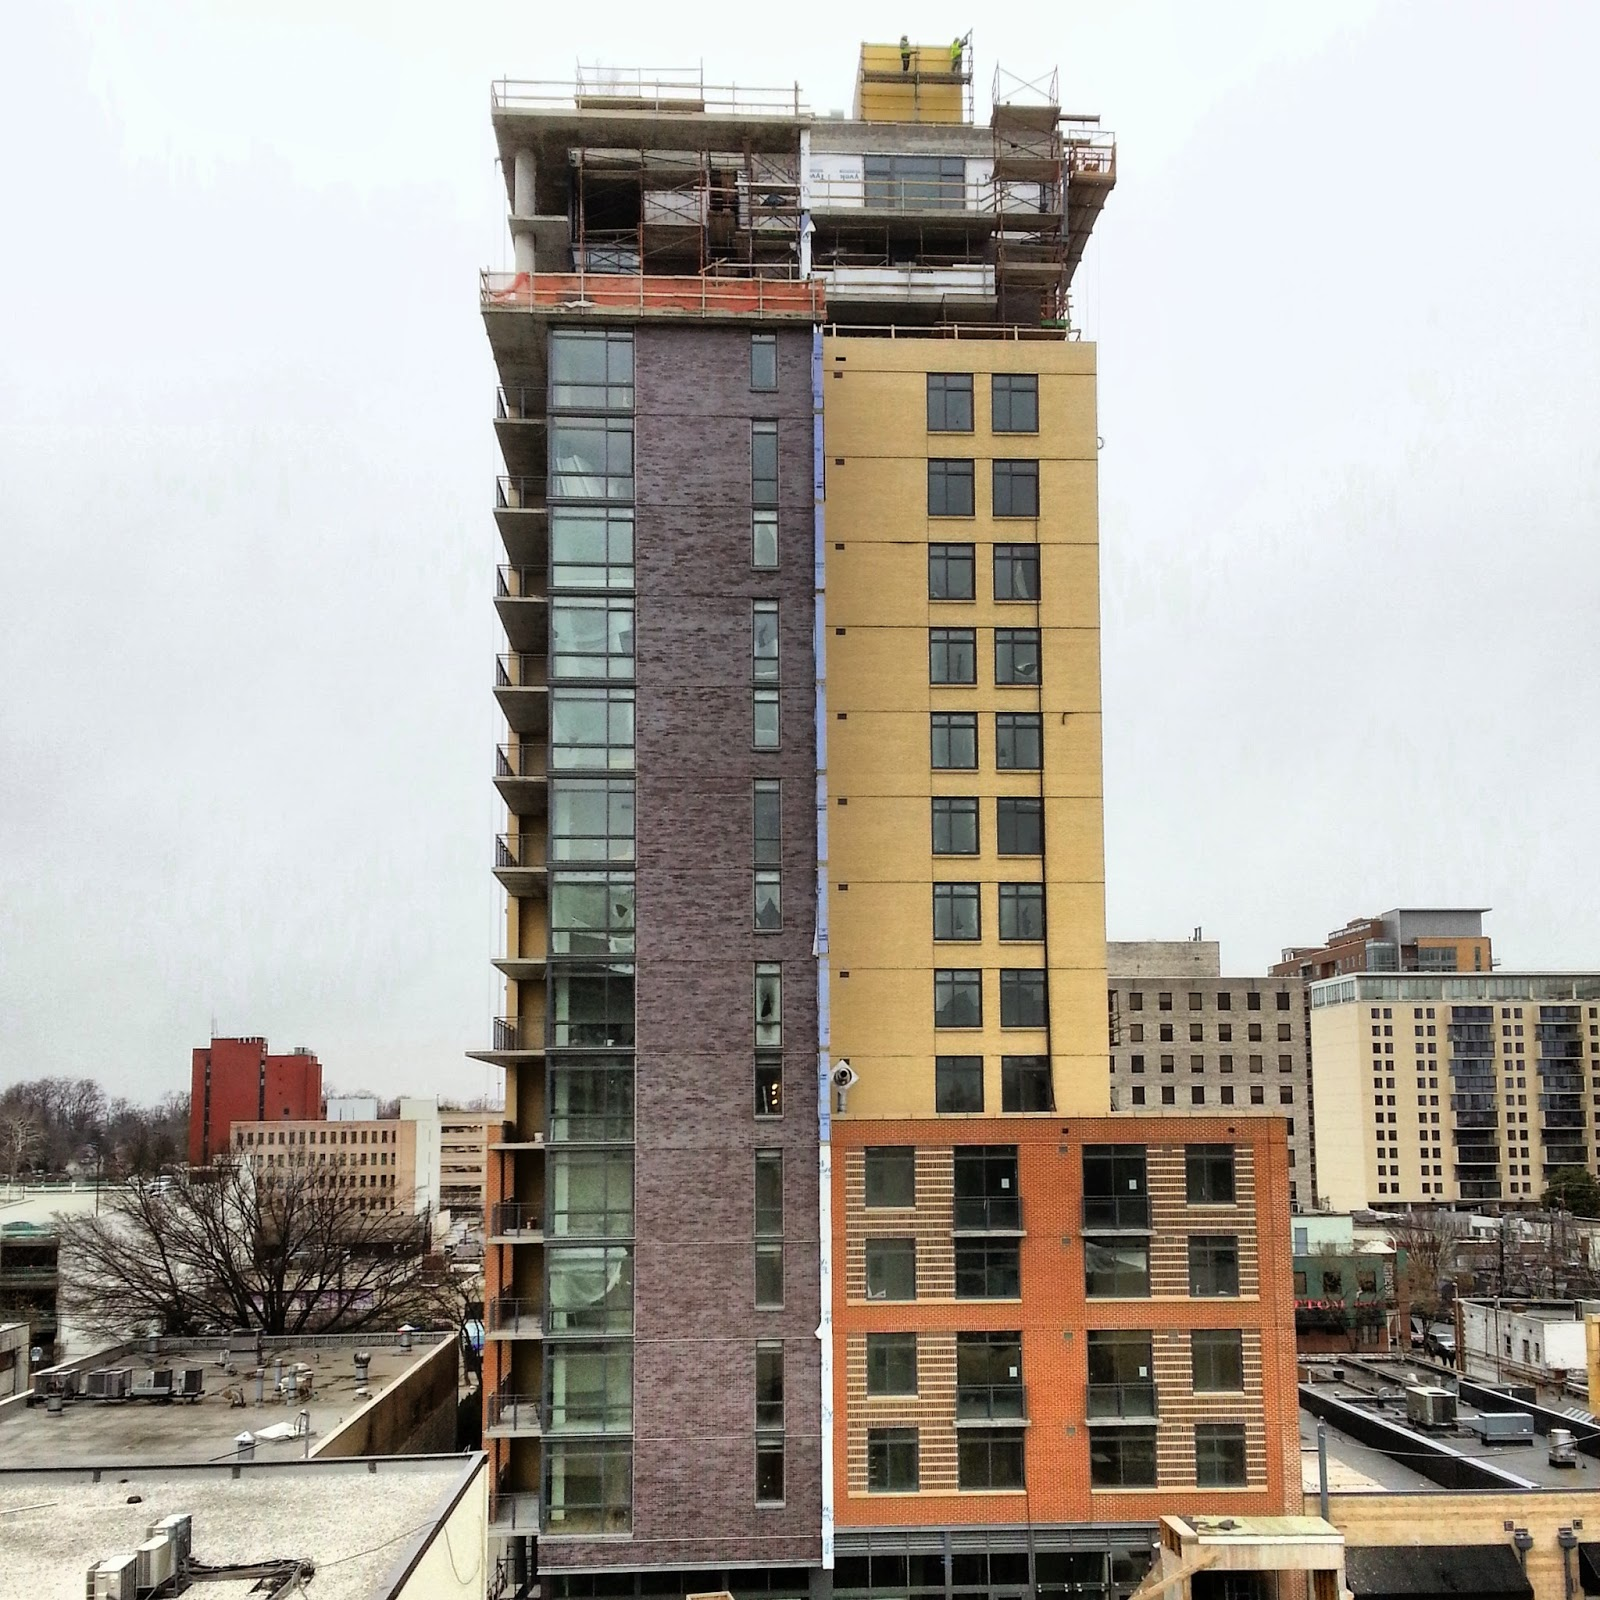 Beau BAINBRIDGE BETHESDA LUXURY APARTMENTS CONSTRUCTION UPDATE (PHOTOS)